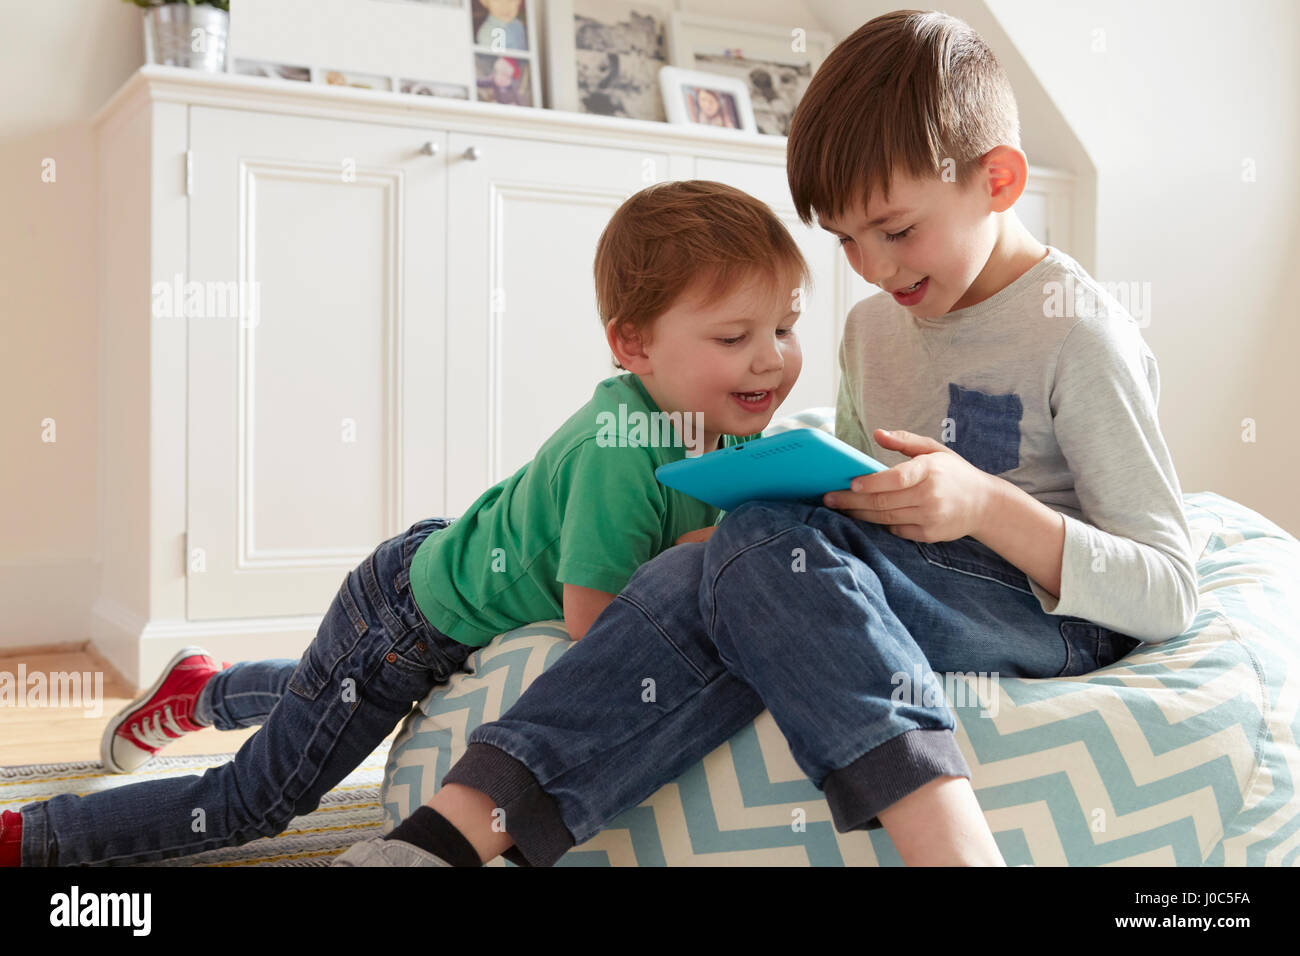 Male toddler and brother on beanbag chair looking at digital tablet - Stock Image